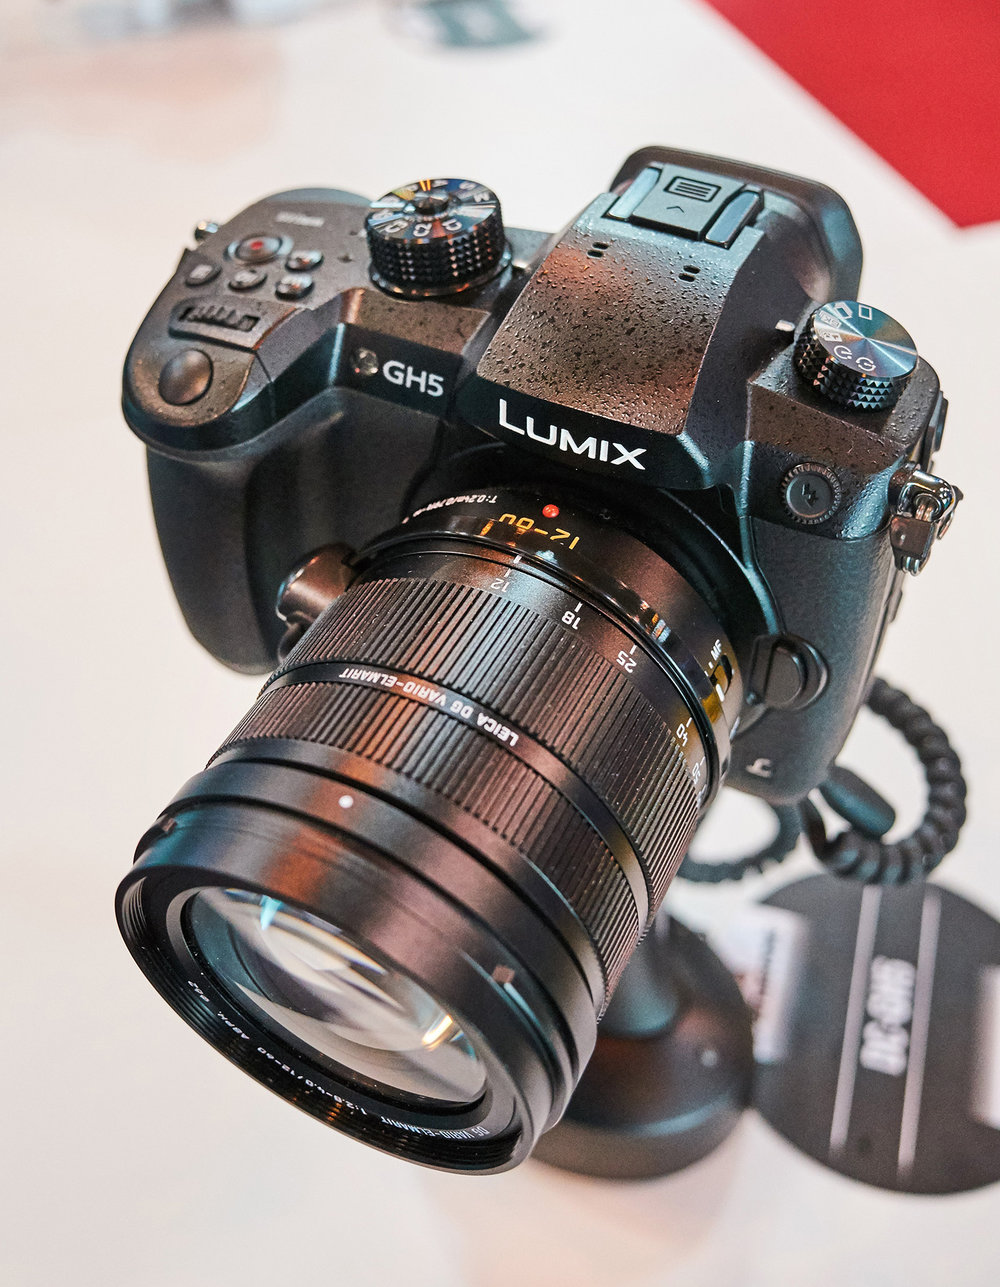 The new Panasonic GH5. Stunning 180 fps and 5 axis in-body stabilisation